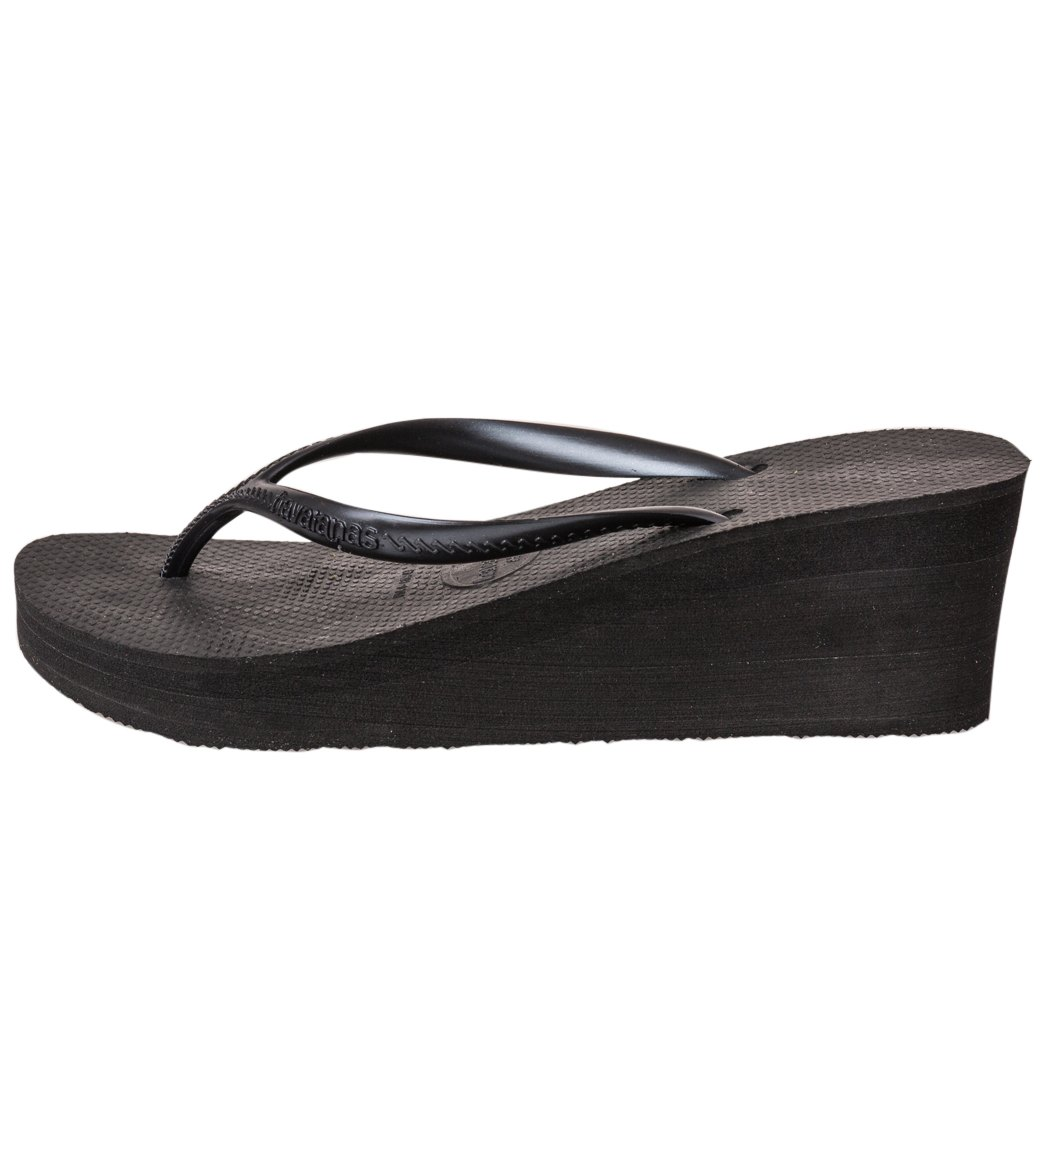 2fd389c71ecdac Havaianas Women s High Fashion Wedge Flip Flop at SwimOutlet.com